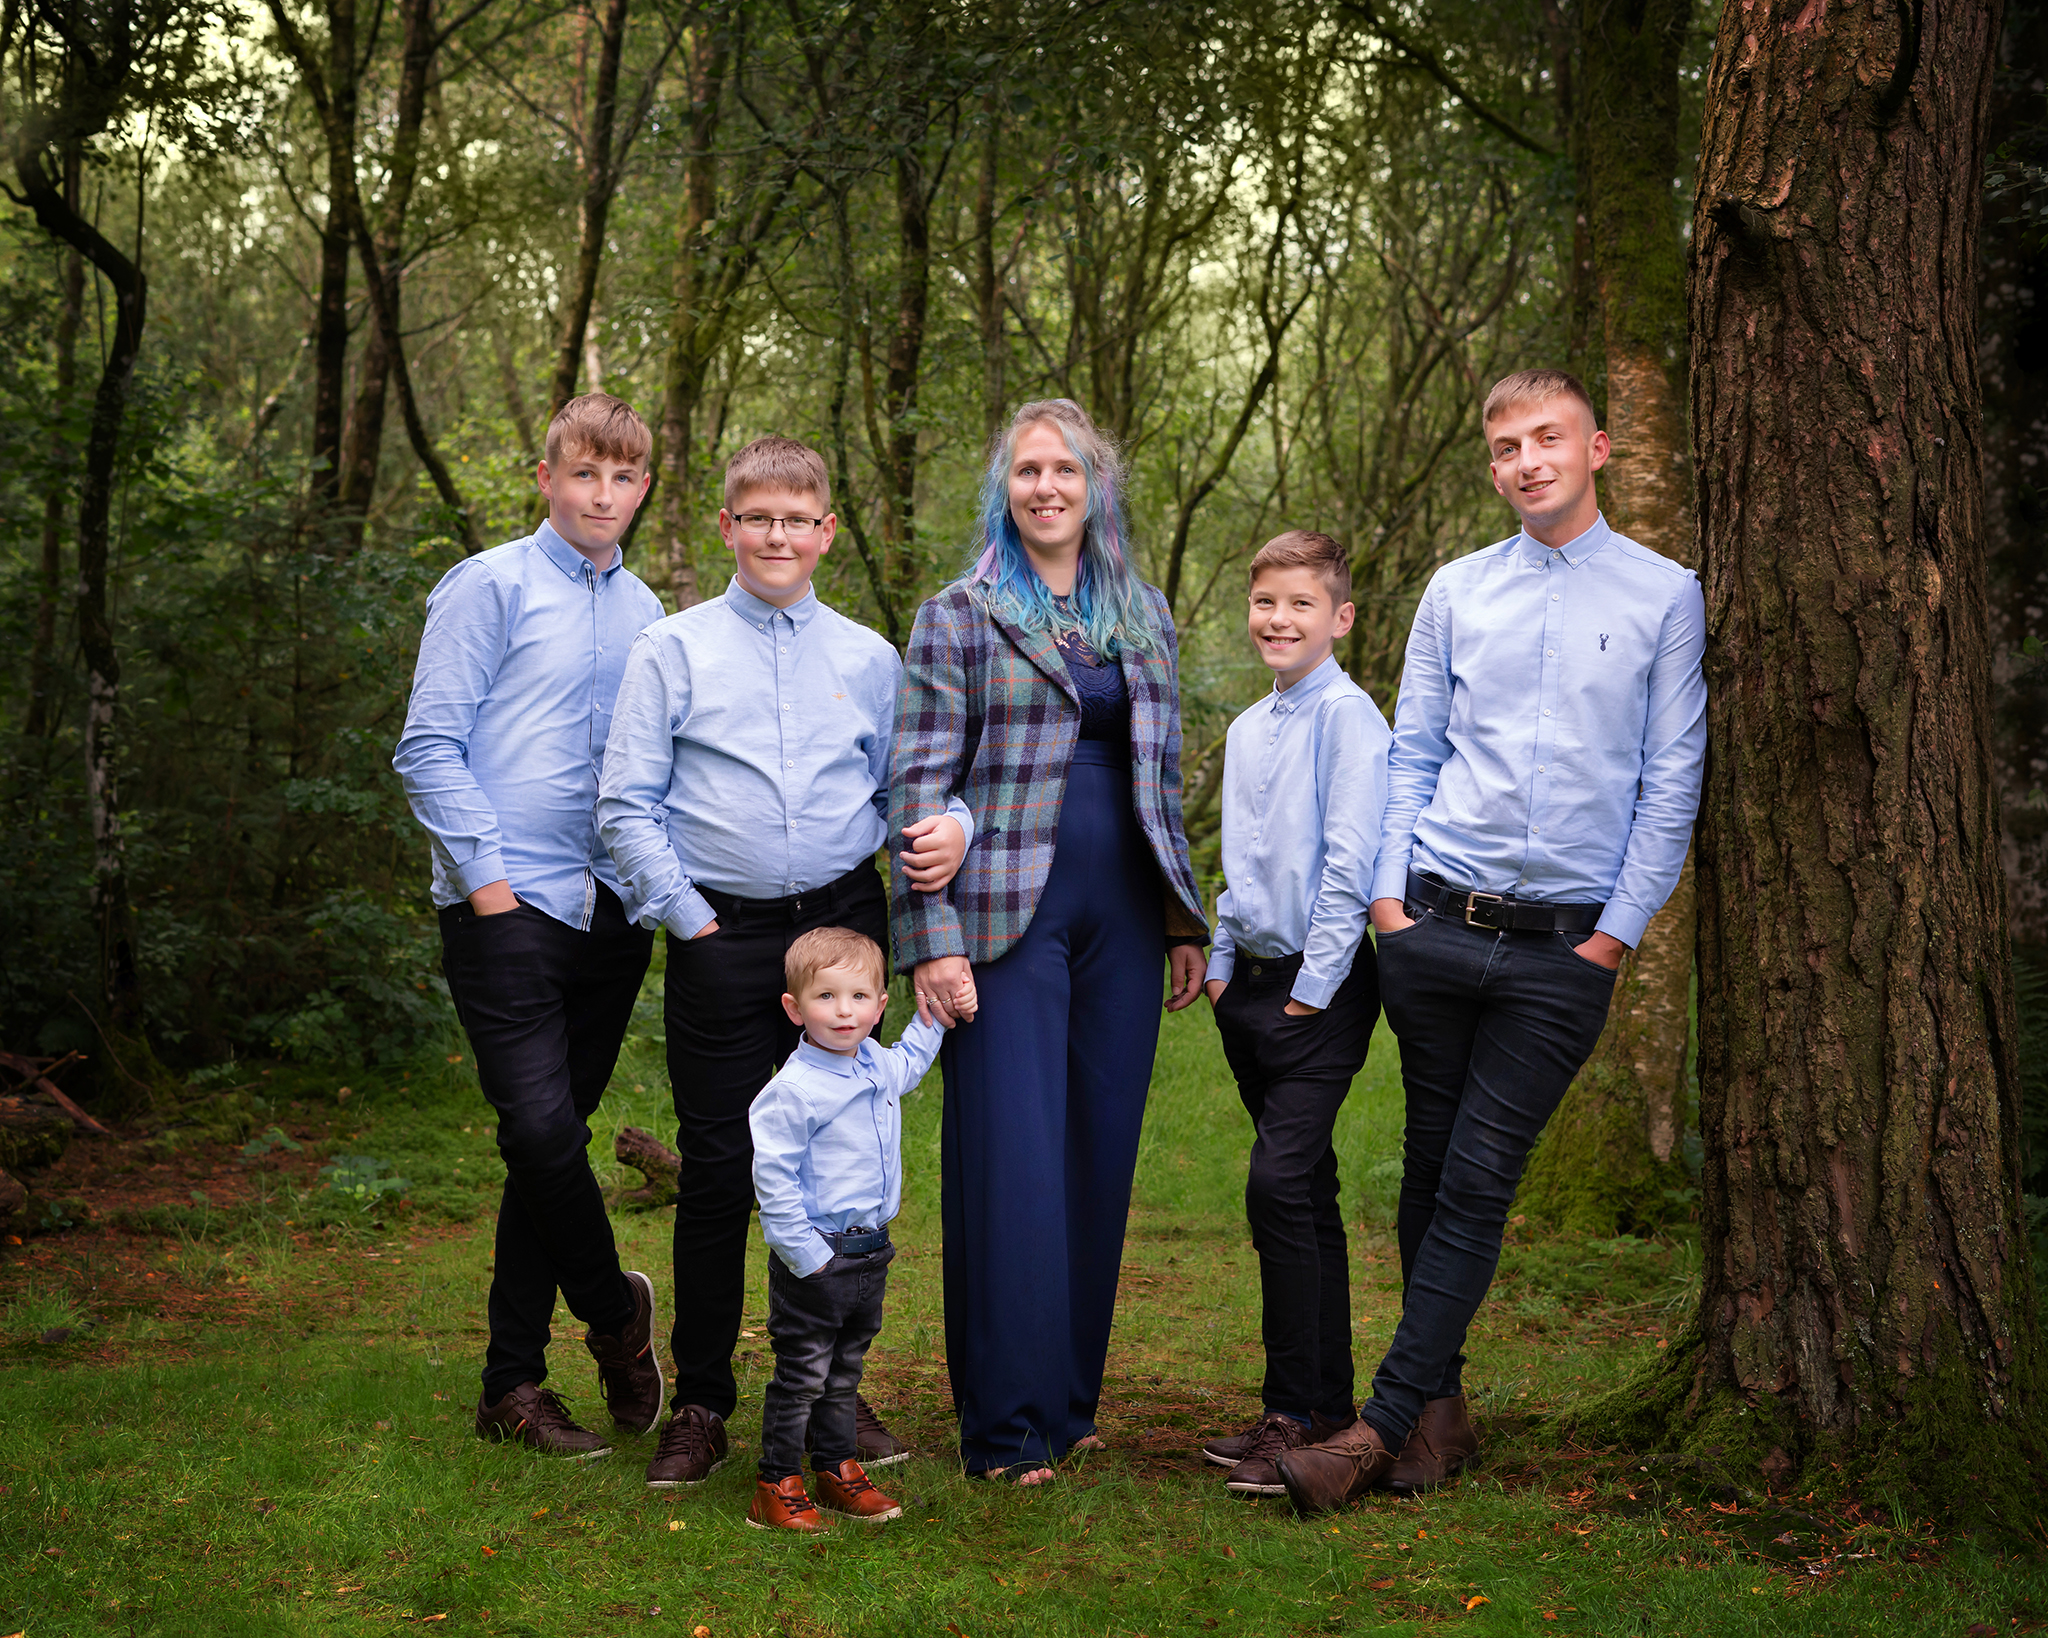 outdoor family photograph family on location in woods by Family photographer Lancashire